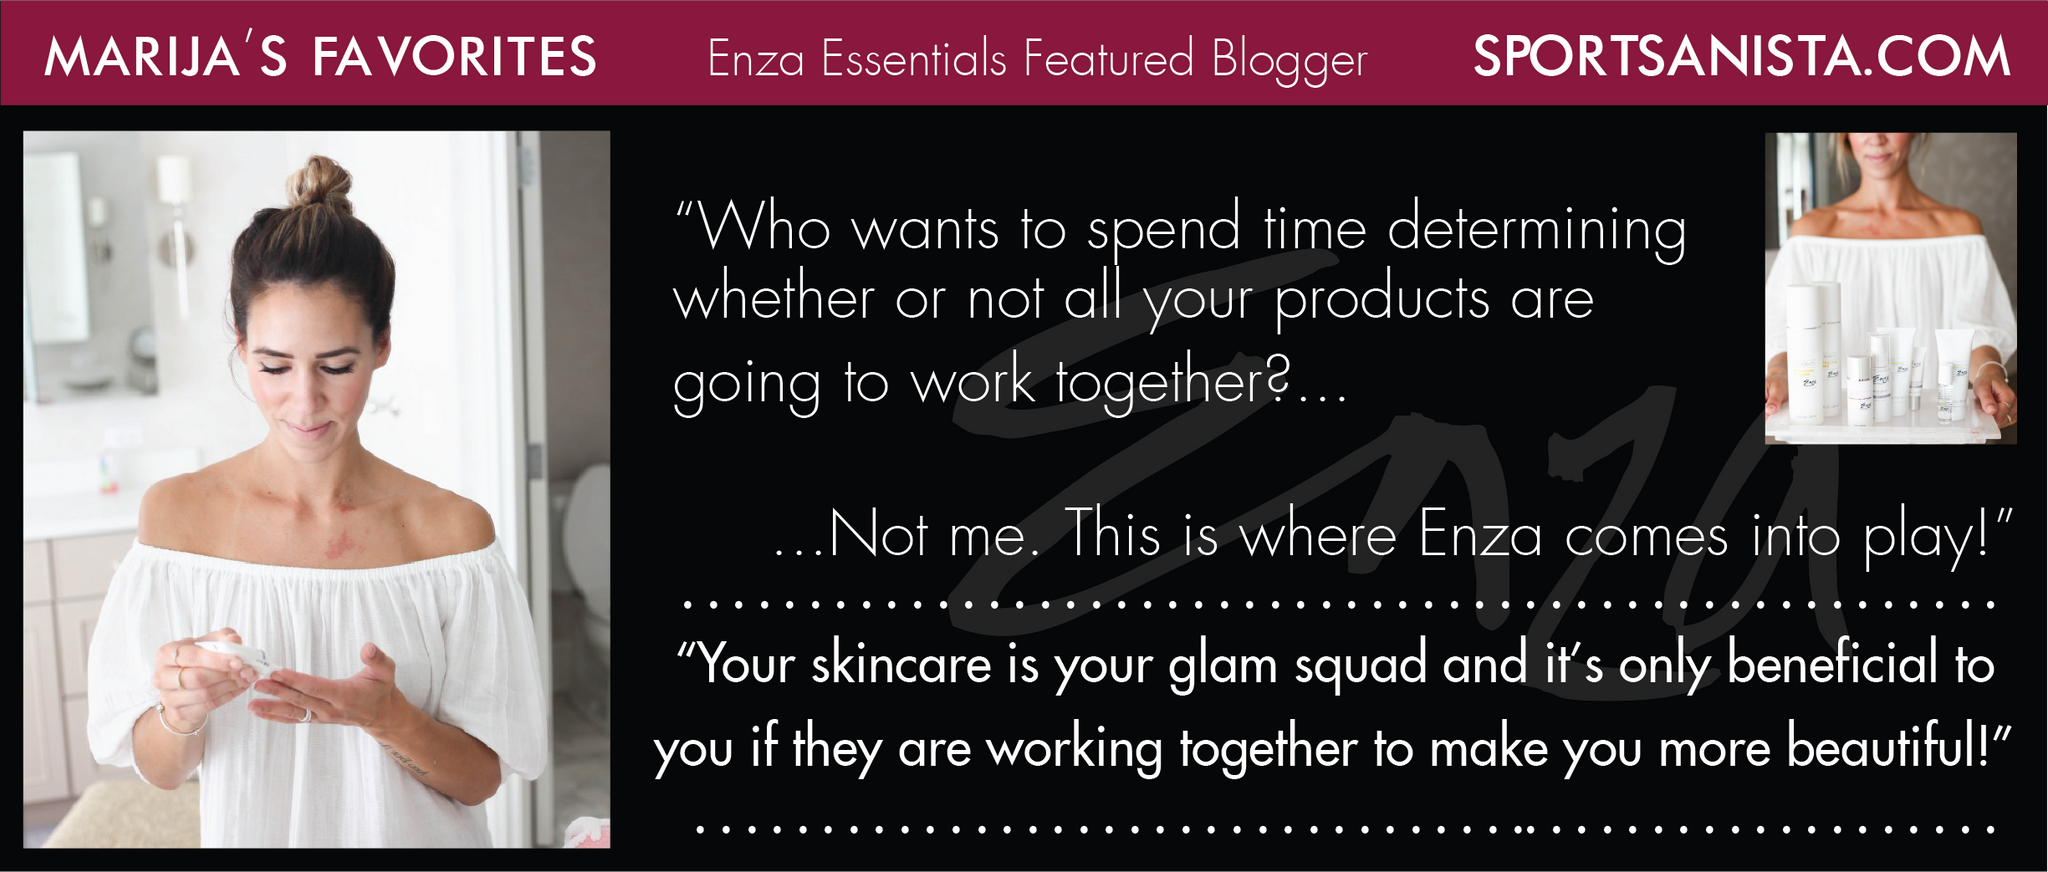 Sportsanista Marija's Enza Essentials Review